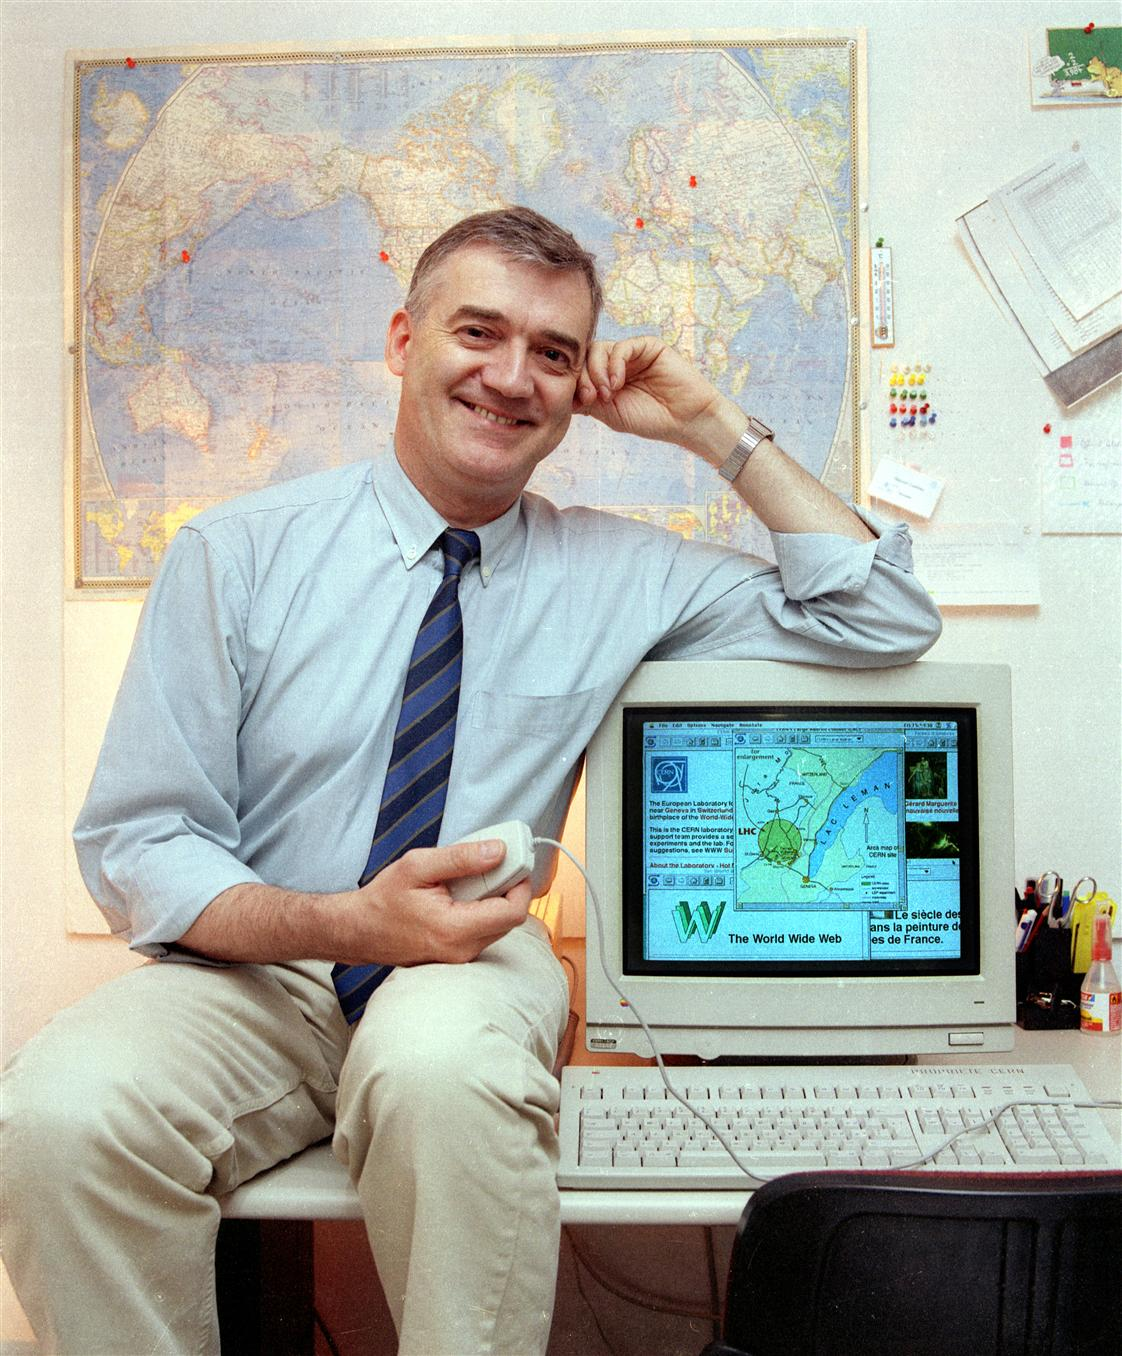 Robert Cailliau, a systems engineer at CERN who was Tim Berners-Lee's first partner on the World Wide Web project.